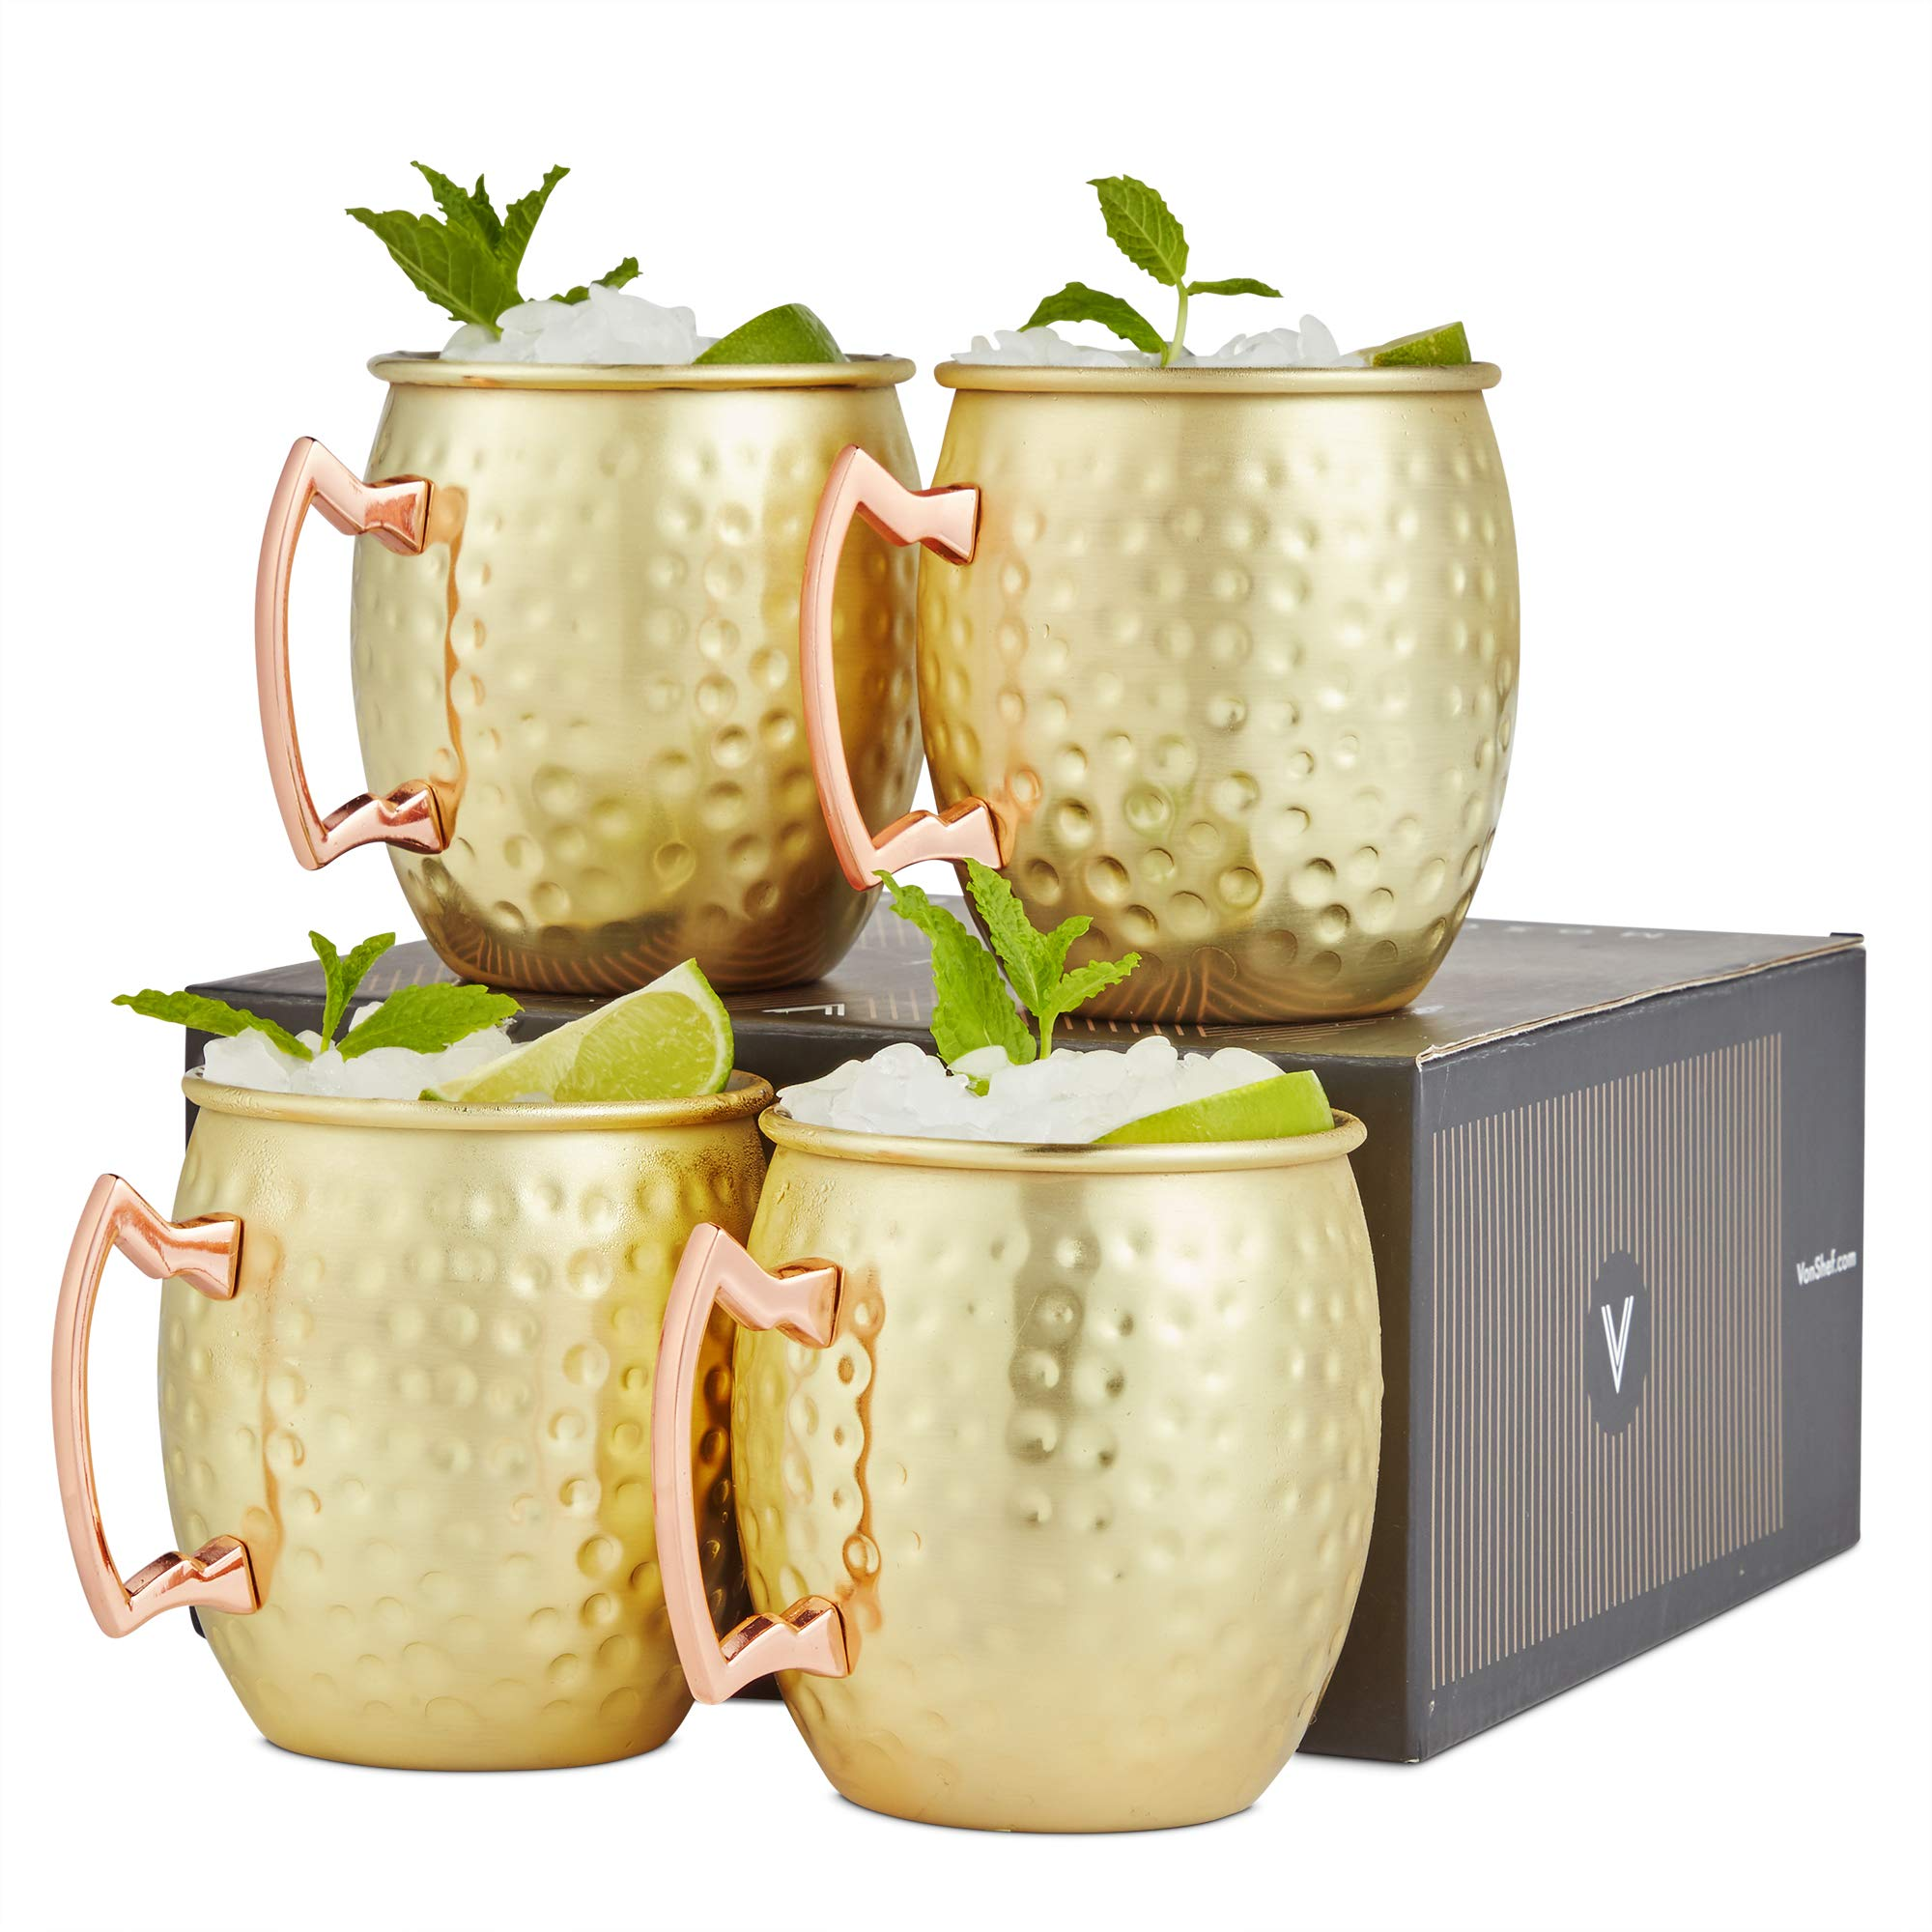 VonShef Moscow Mule Mugs Set of 4 Gold Hammered Effect Barrel Style 16oz Glasses With Gift Box